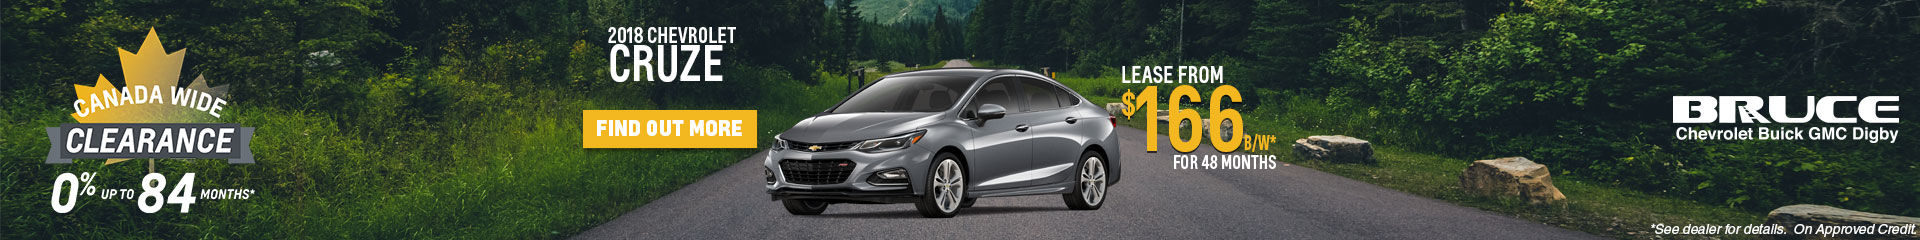 Lease the 2018 Cruze